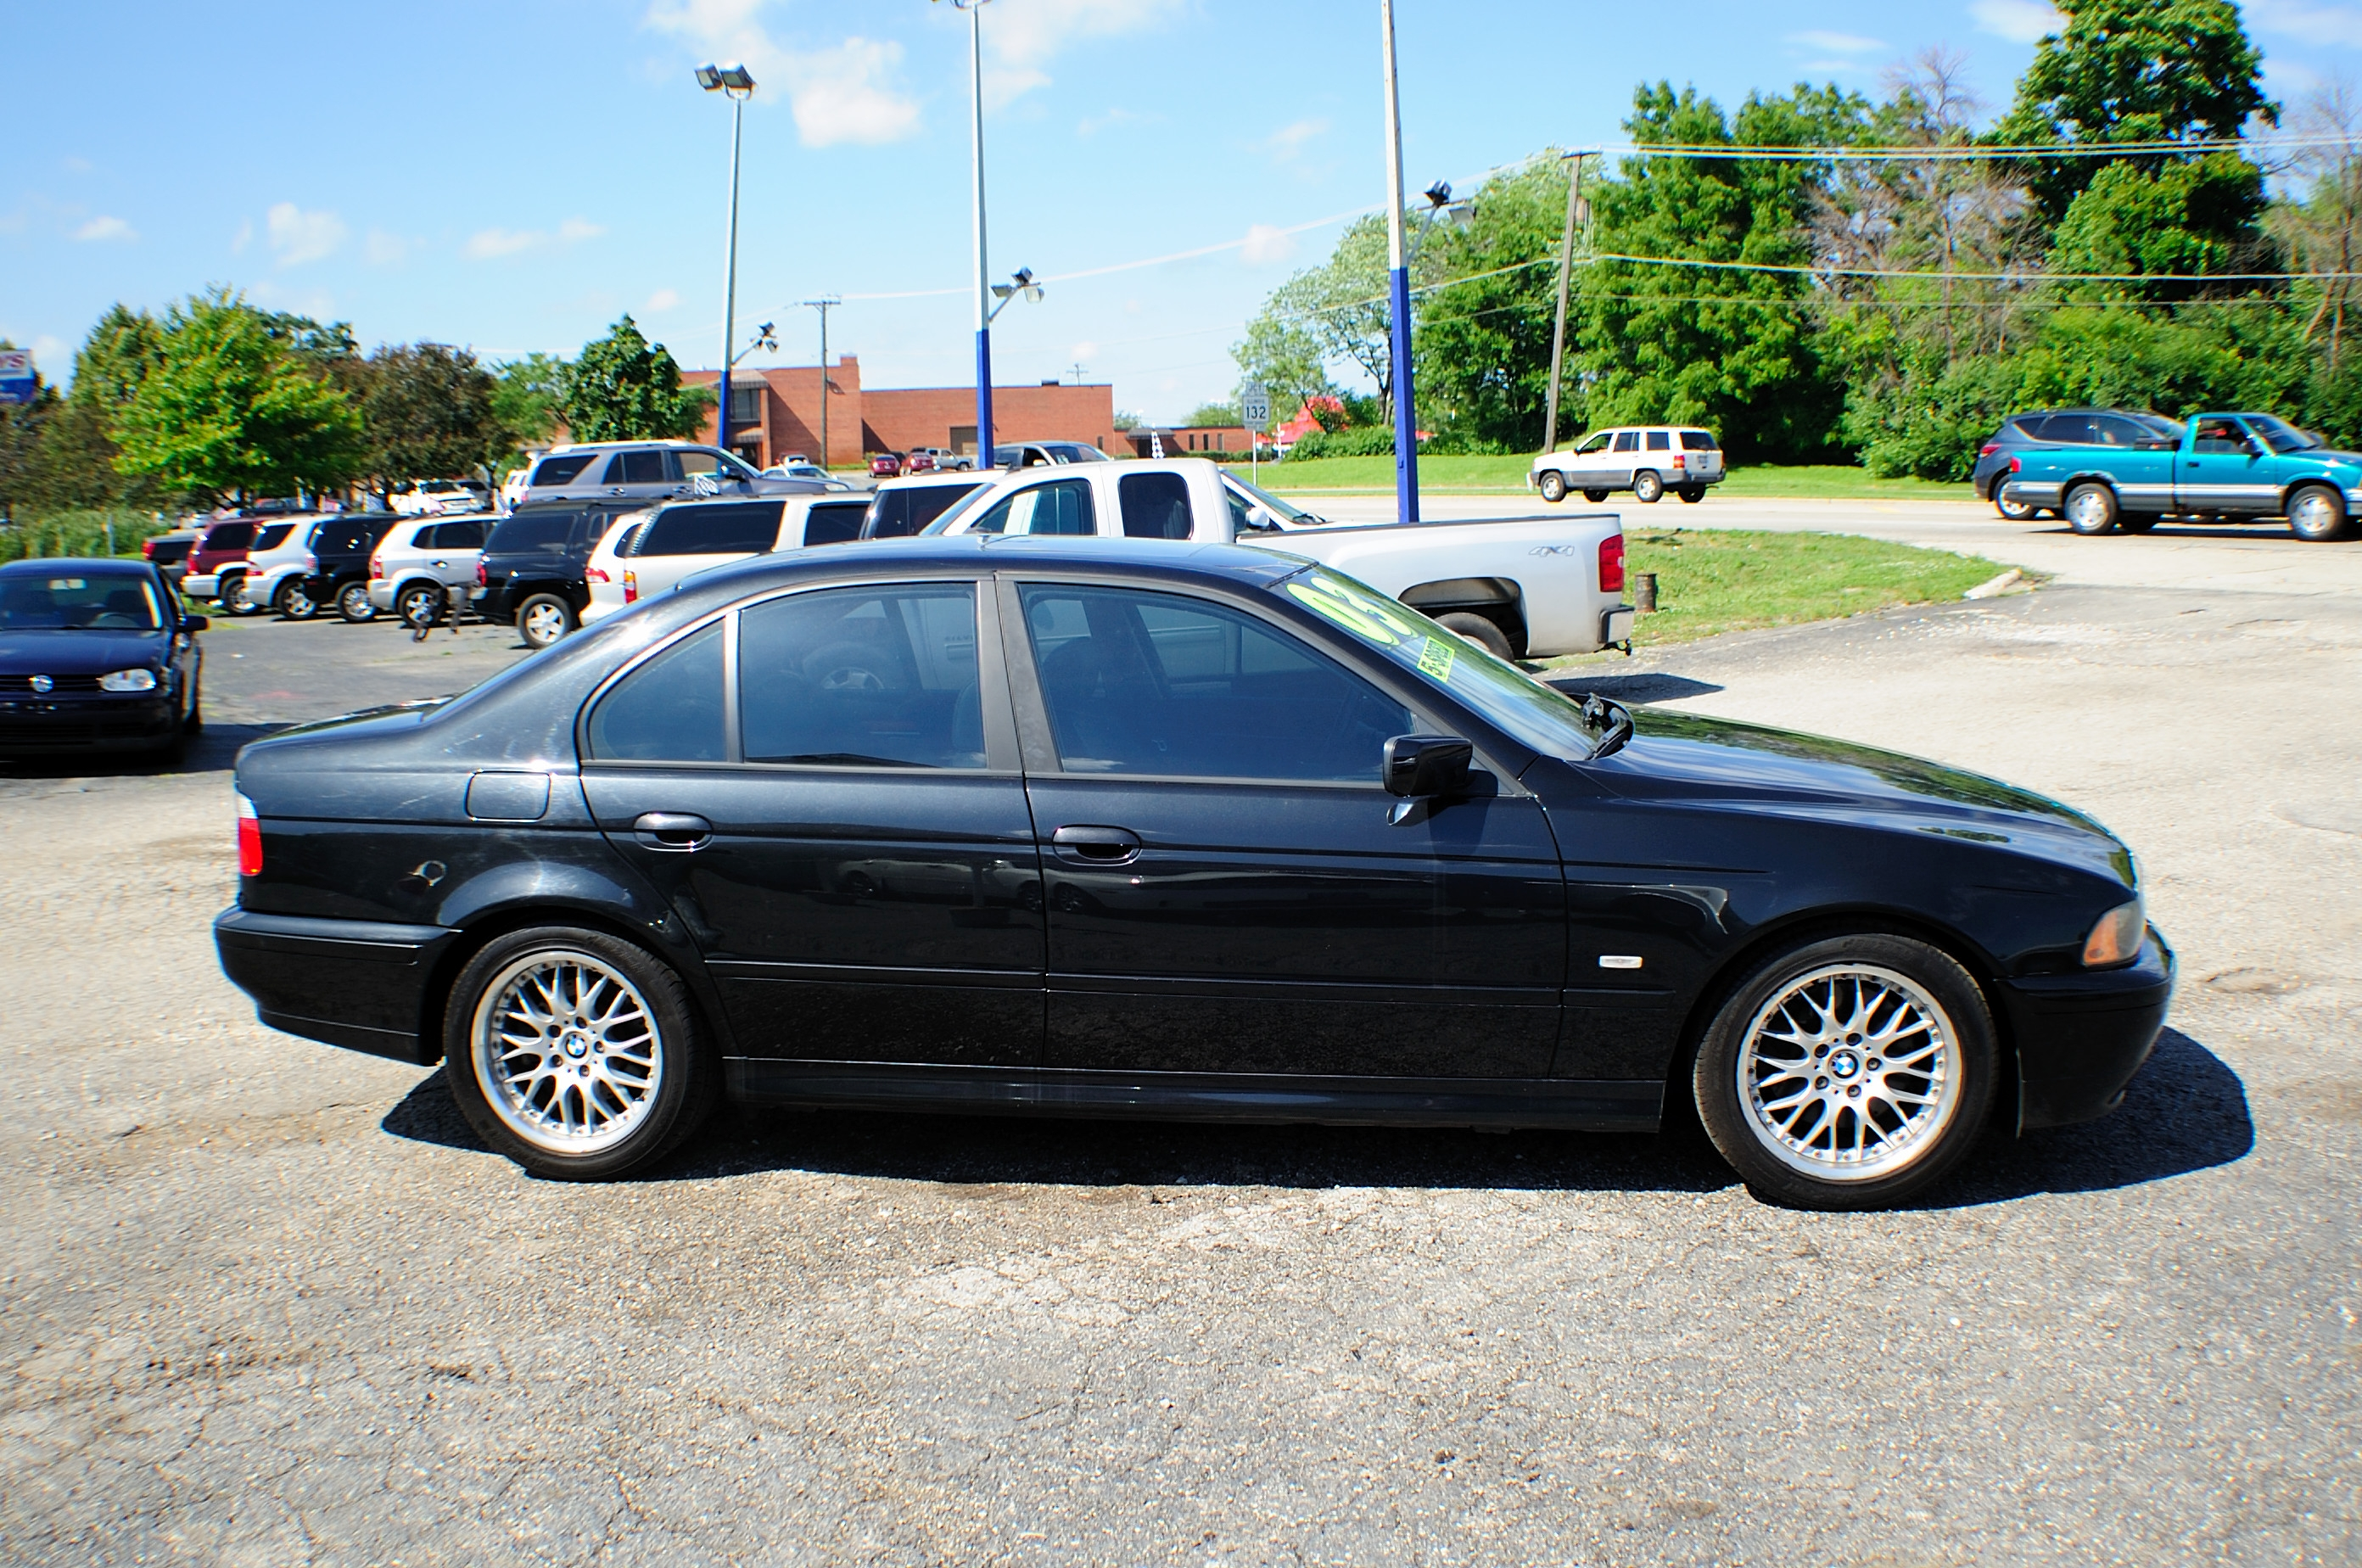 2003 bmw 530i 5 series black m5 manual sedan used car sale Motor city car sales